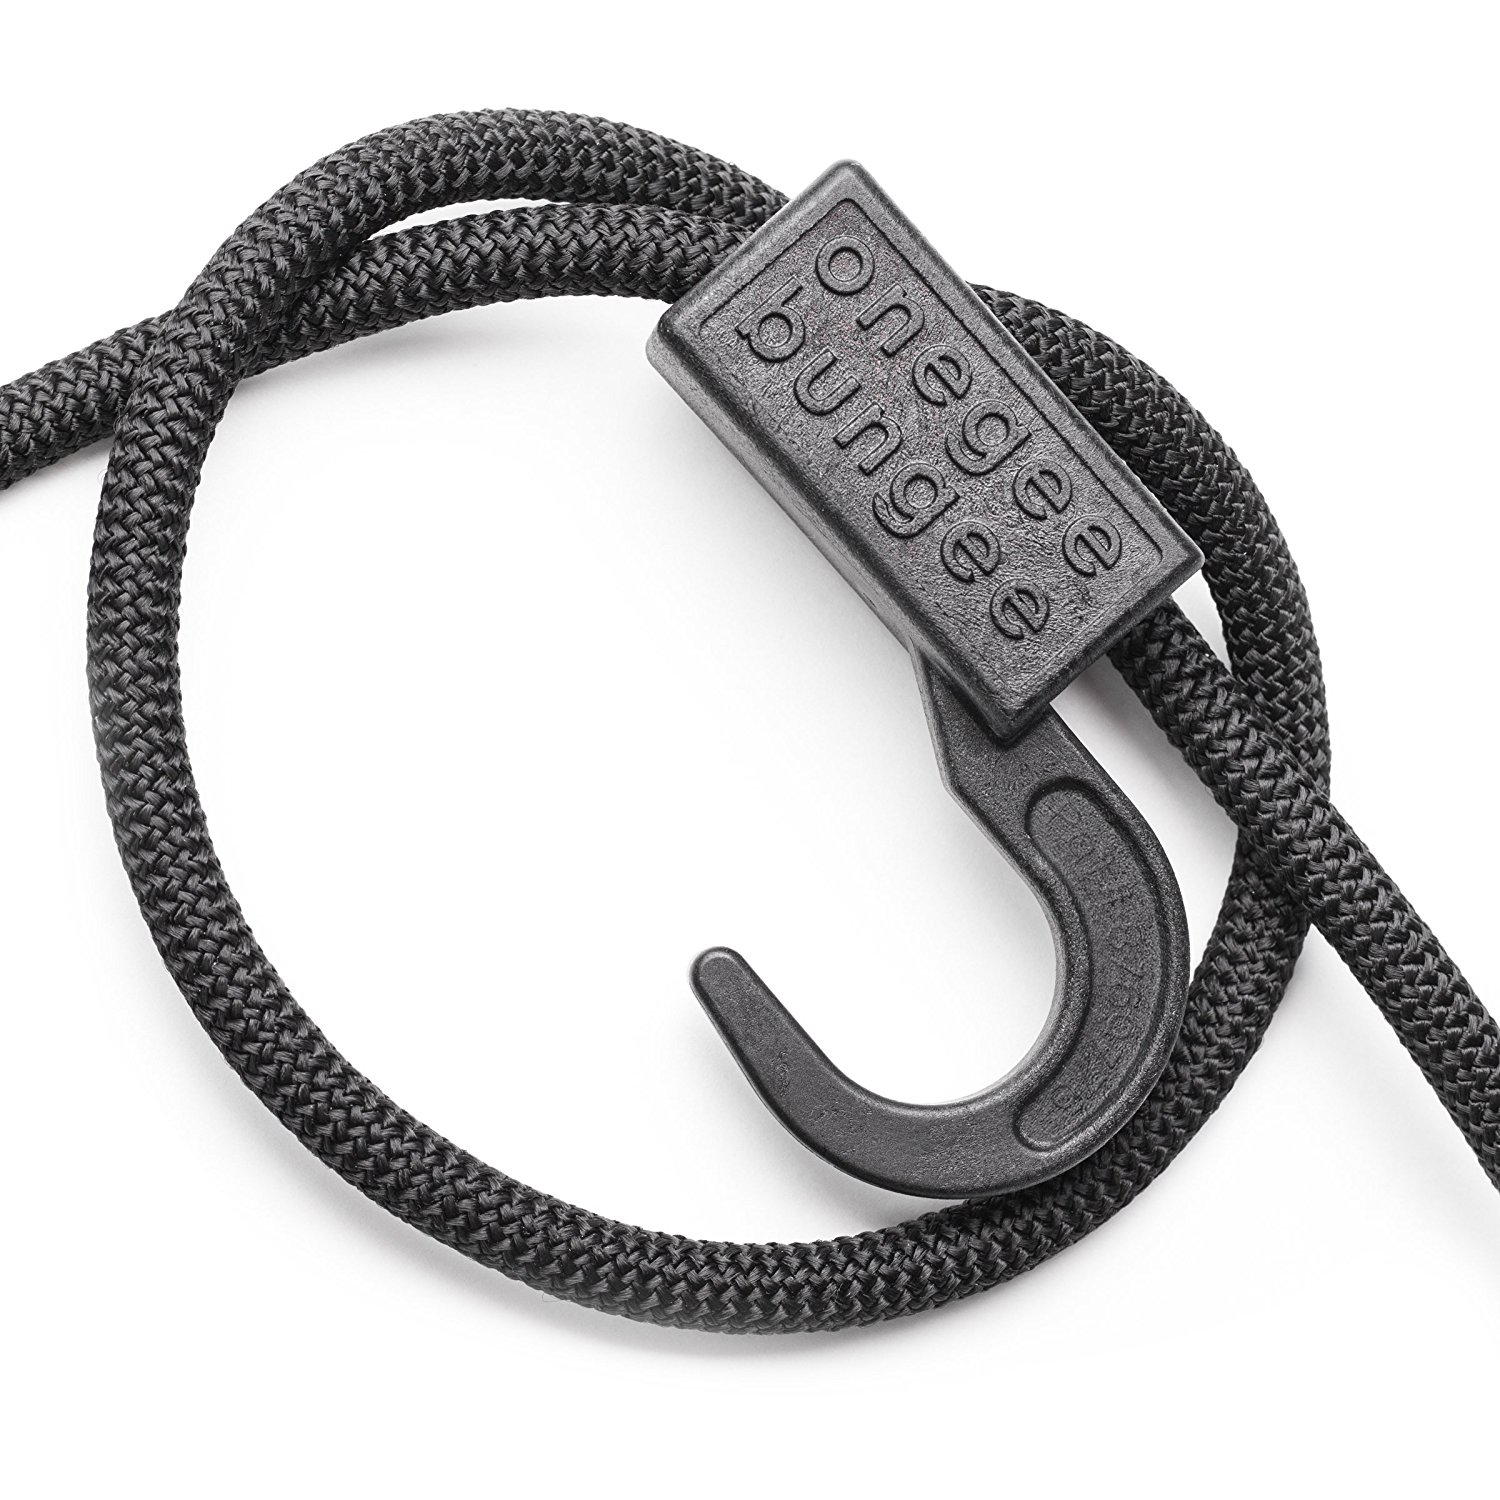 The range bungee cord doorbell button walmart